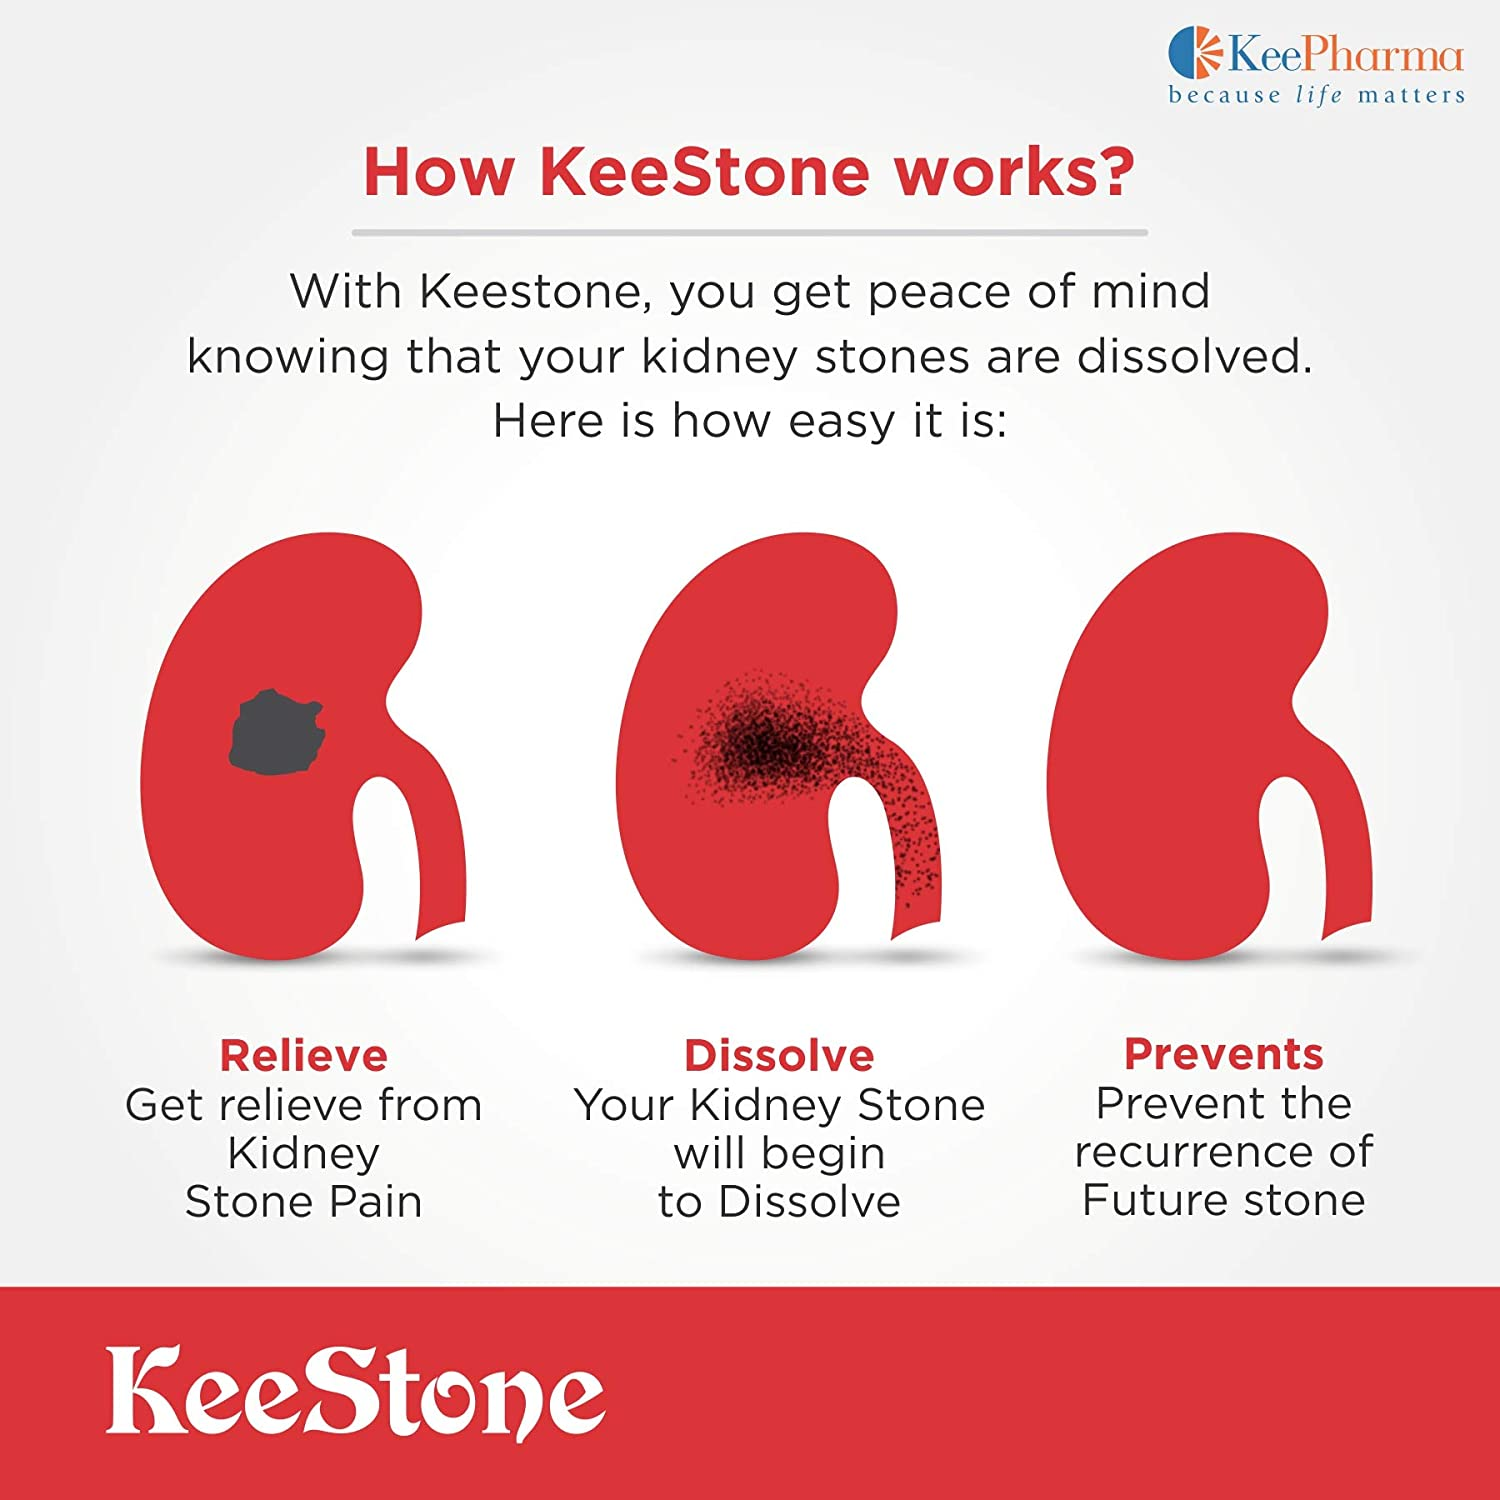 Buy Kee Pharma Kee Stone Ayurvedic Medicine For Kidney Stone Dissolve Kidney Stones Pure Organic 60 Pills Support Urinary Tract Health Online At Low Prices In India Amazon In